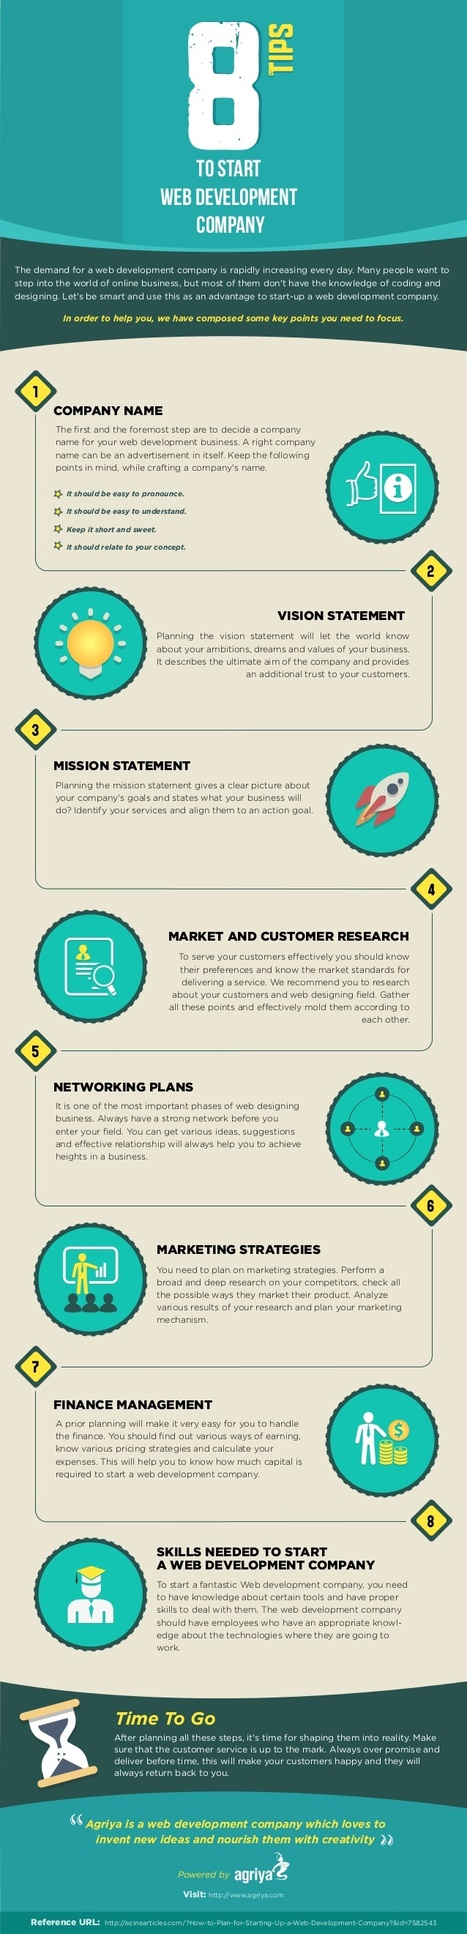 Tips to Start Web Development Company - Infography - Agriya | Zocdoc Clone Script | Scoop.it